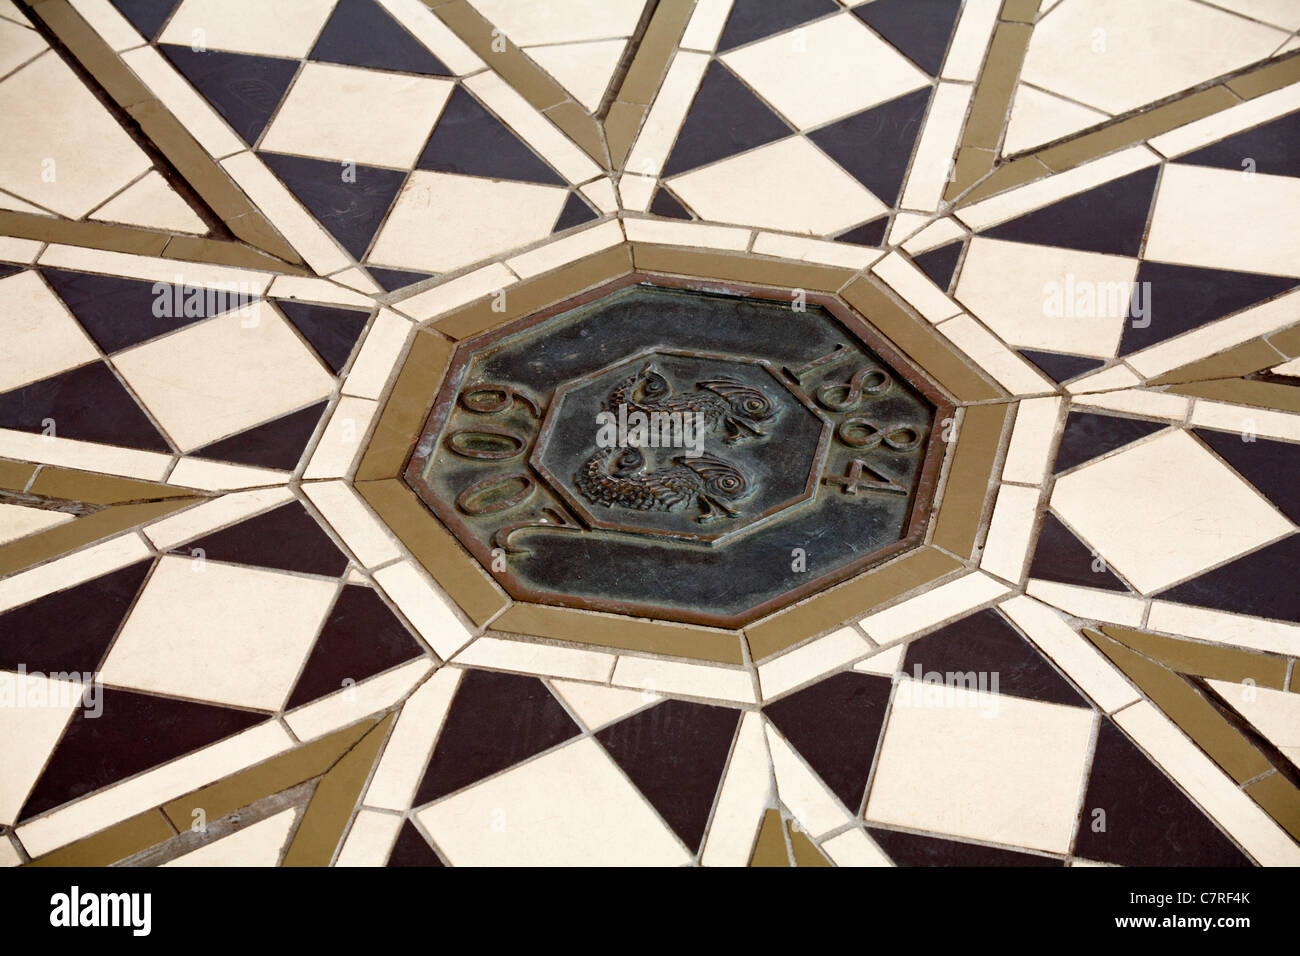 Floor tiles in the Bandstand at Brighton in September - Stock Image